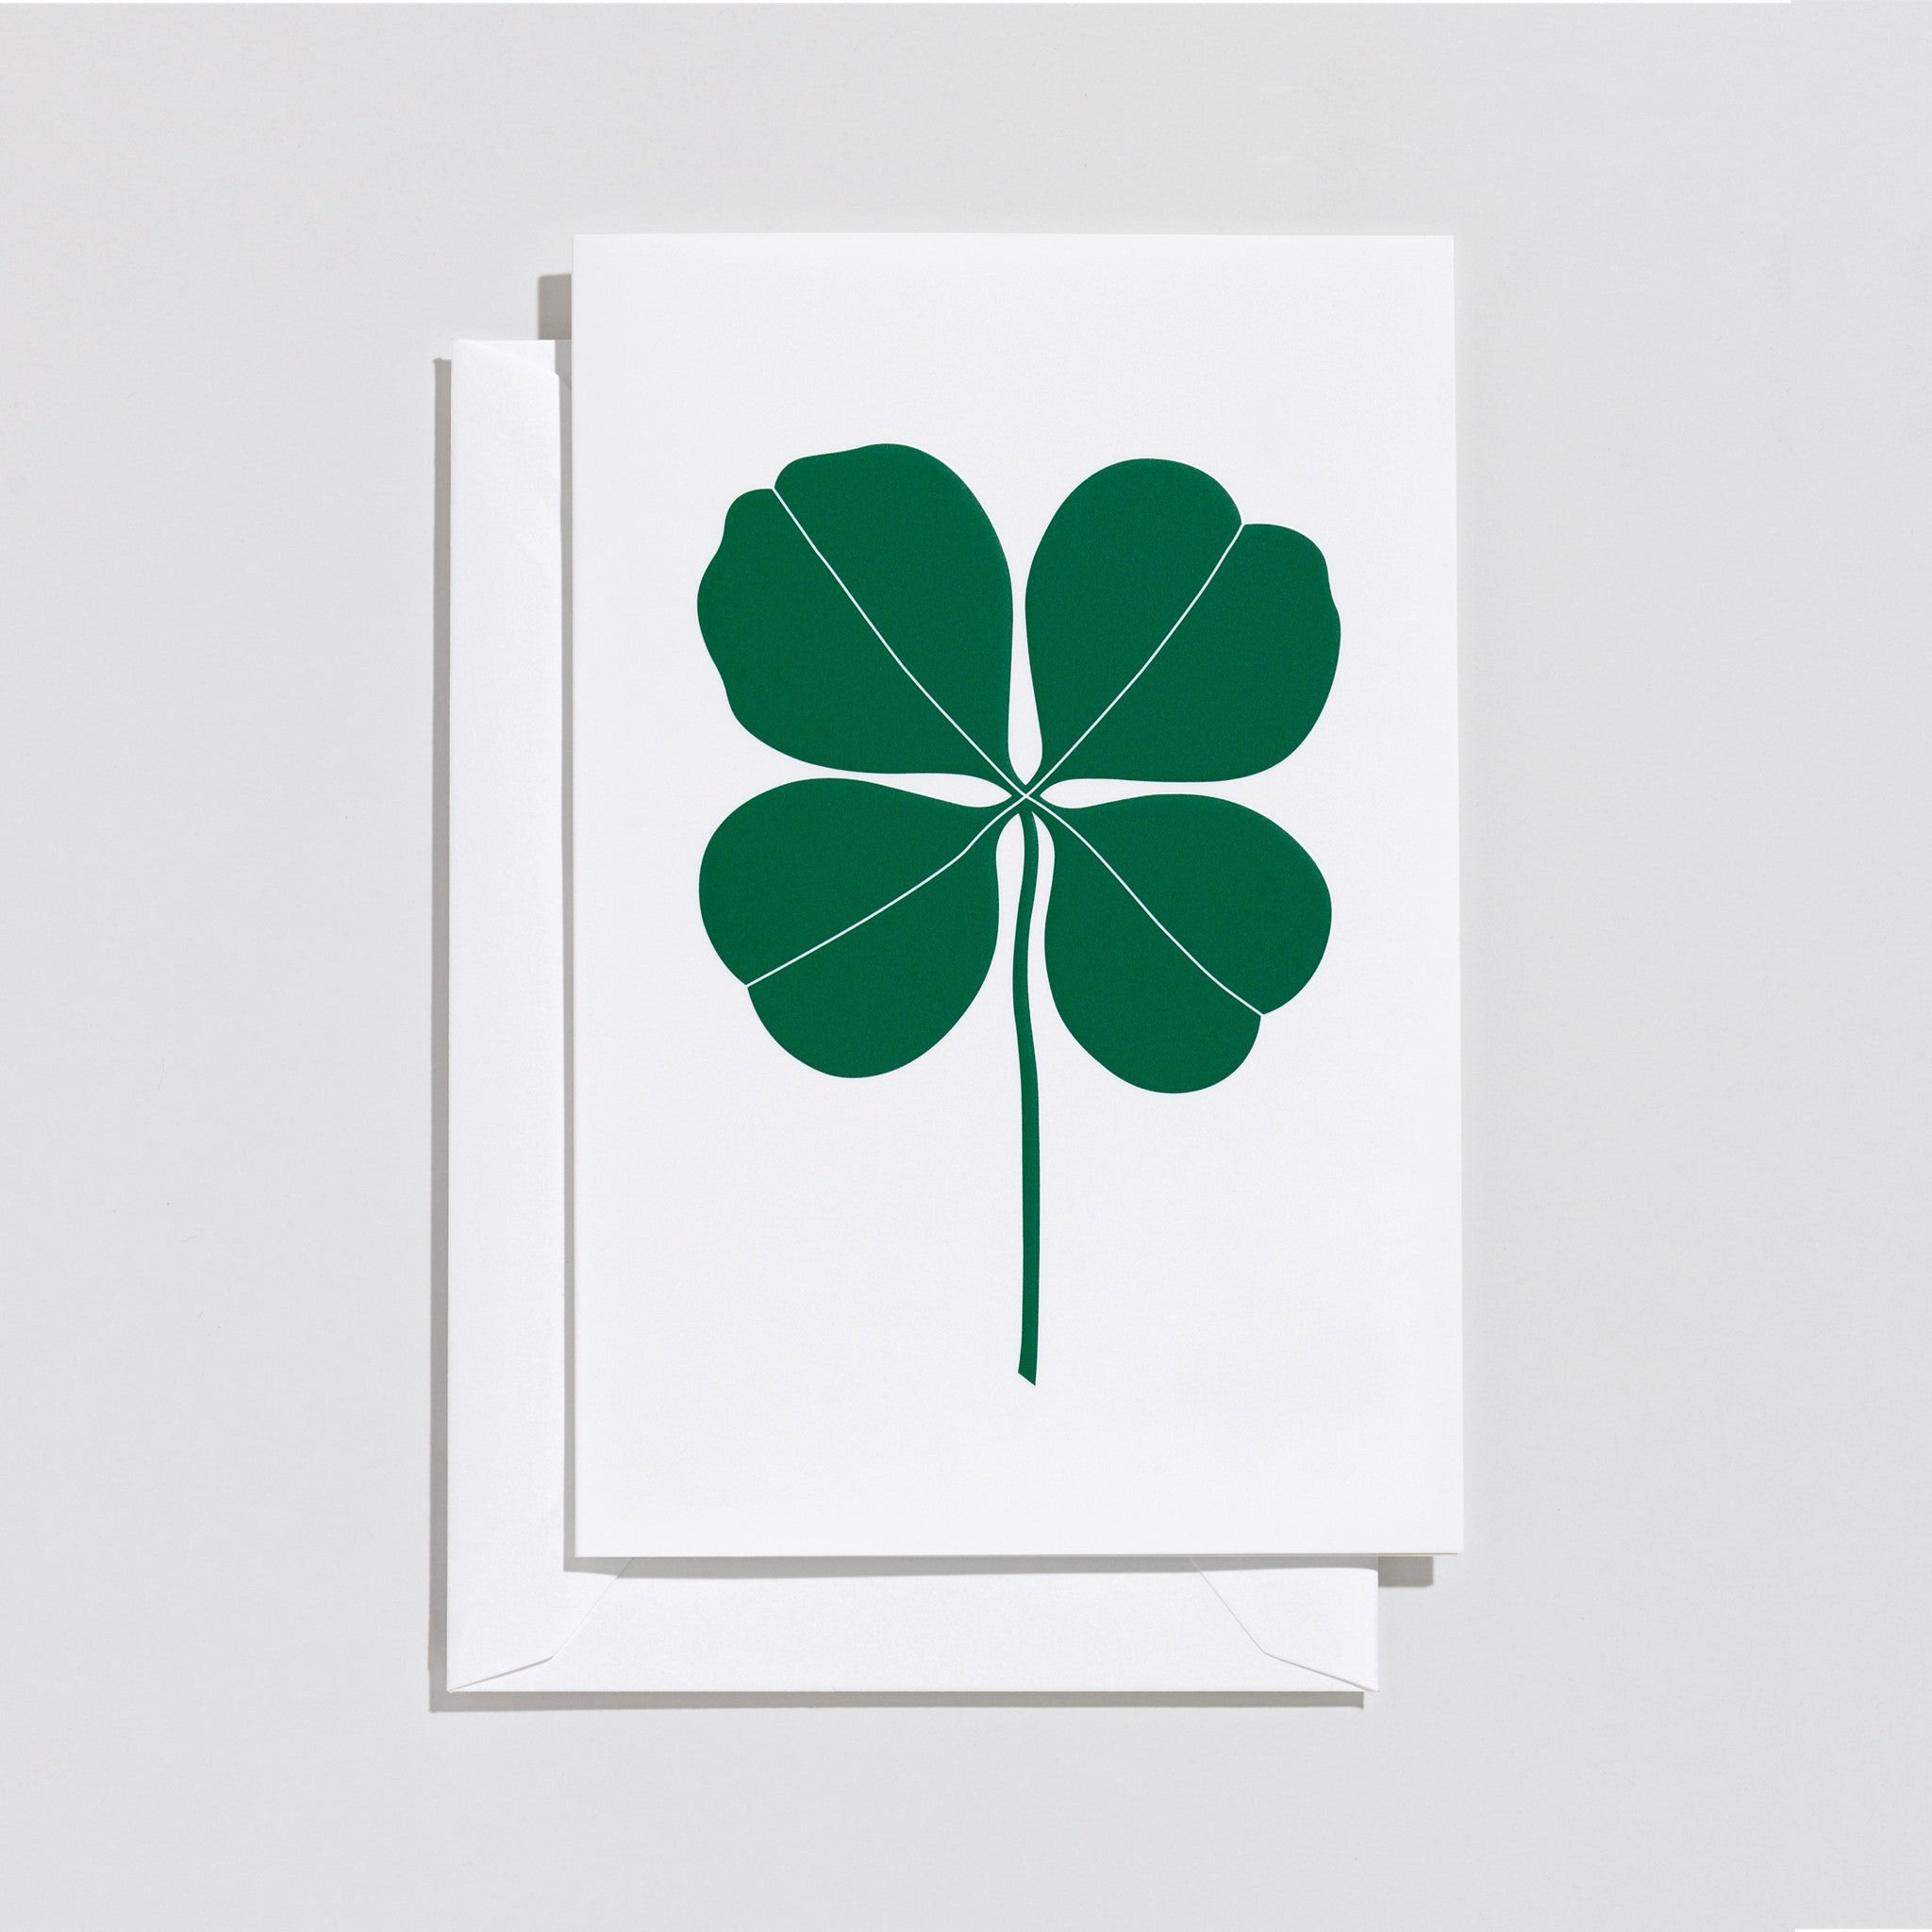 Four Leaf Clover Card by Alexander Girard